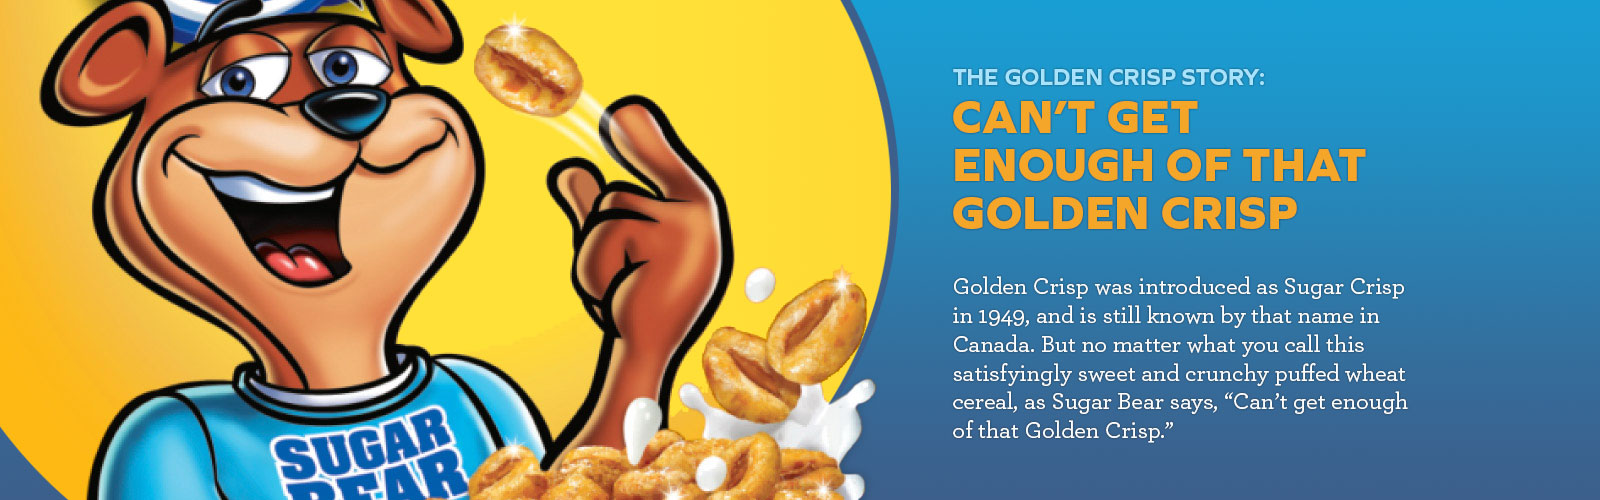 Golden Crisp Story: Can't get enough of that golden crisp | banner image